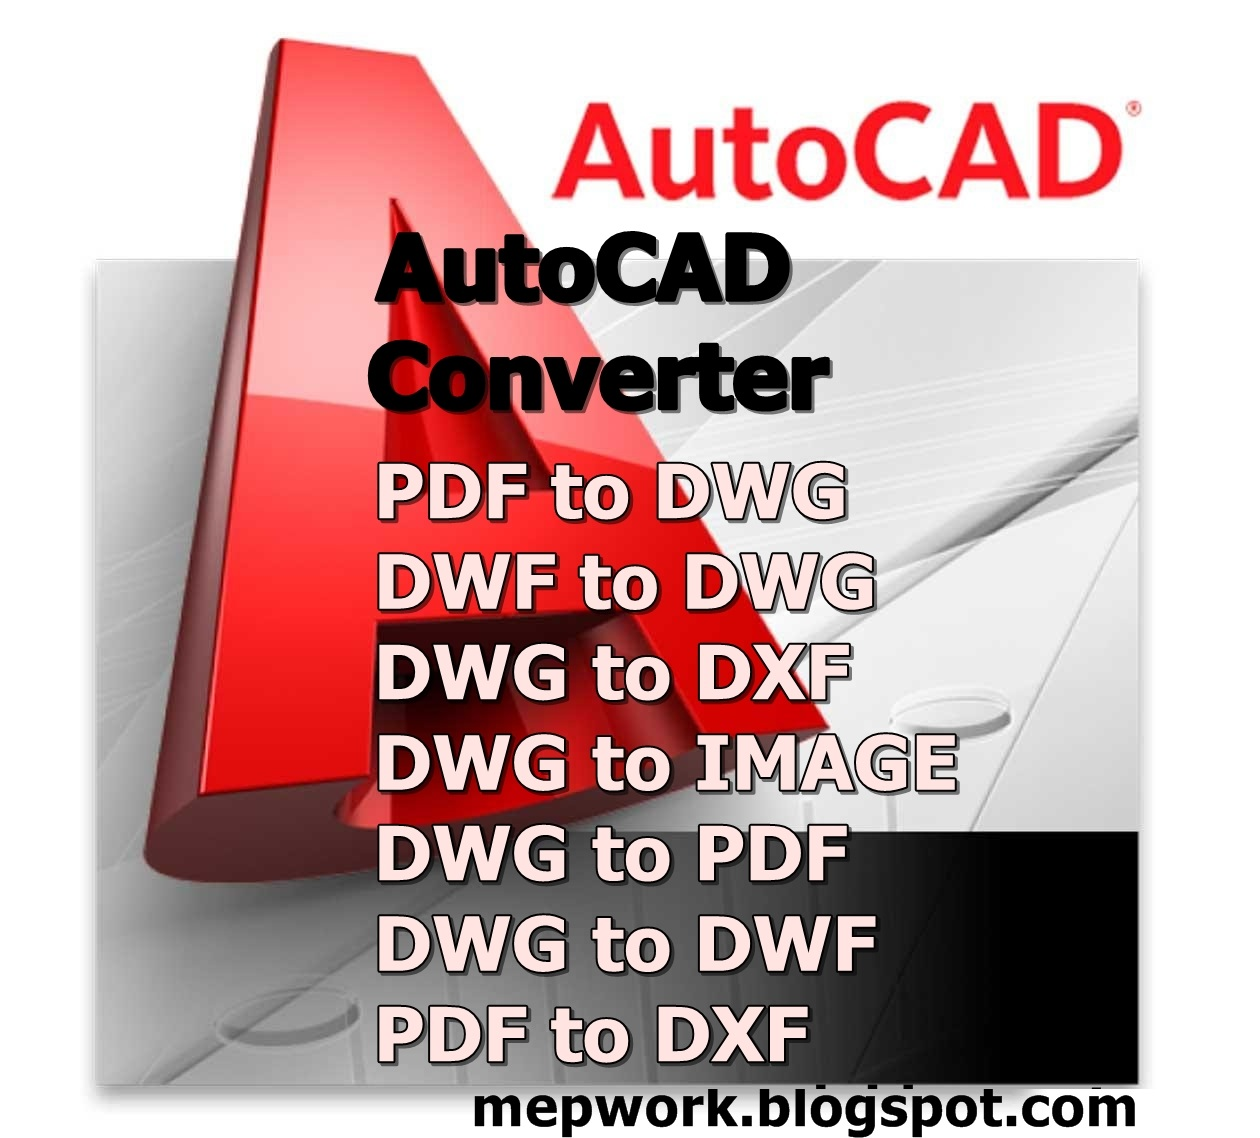 Download Pdf To Dwg Converter Autocad Drawing Hvac Easily And Quickly Converts Files Dxf For Efficient Fast Editing In